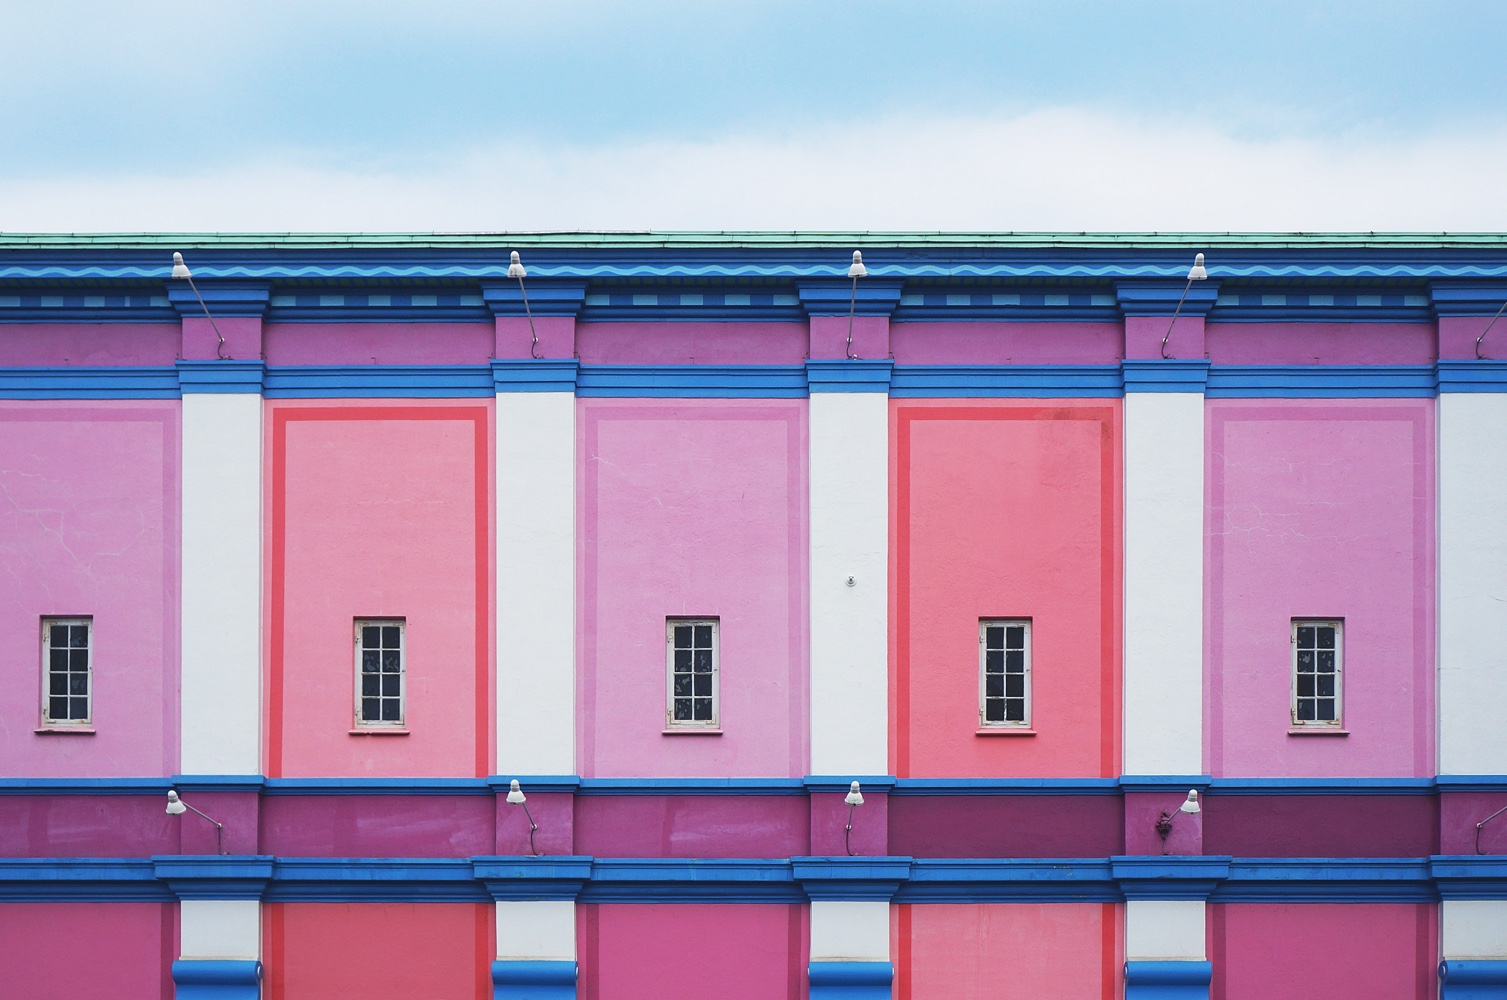 Color Therapy: In the Pink